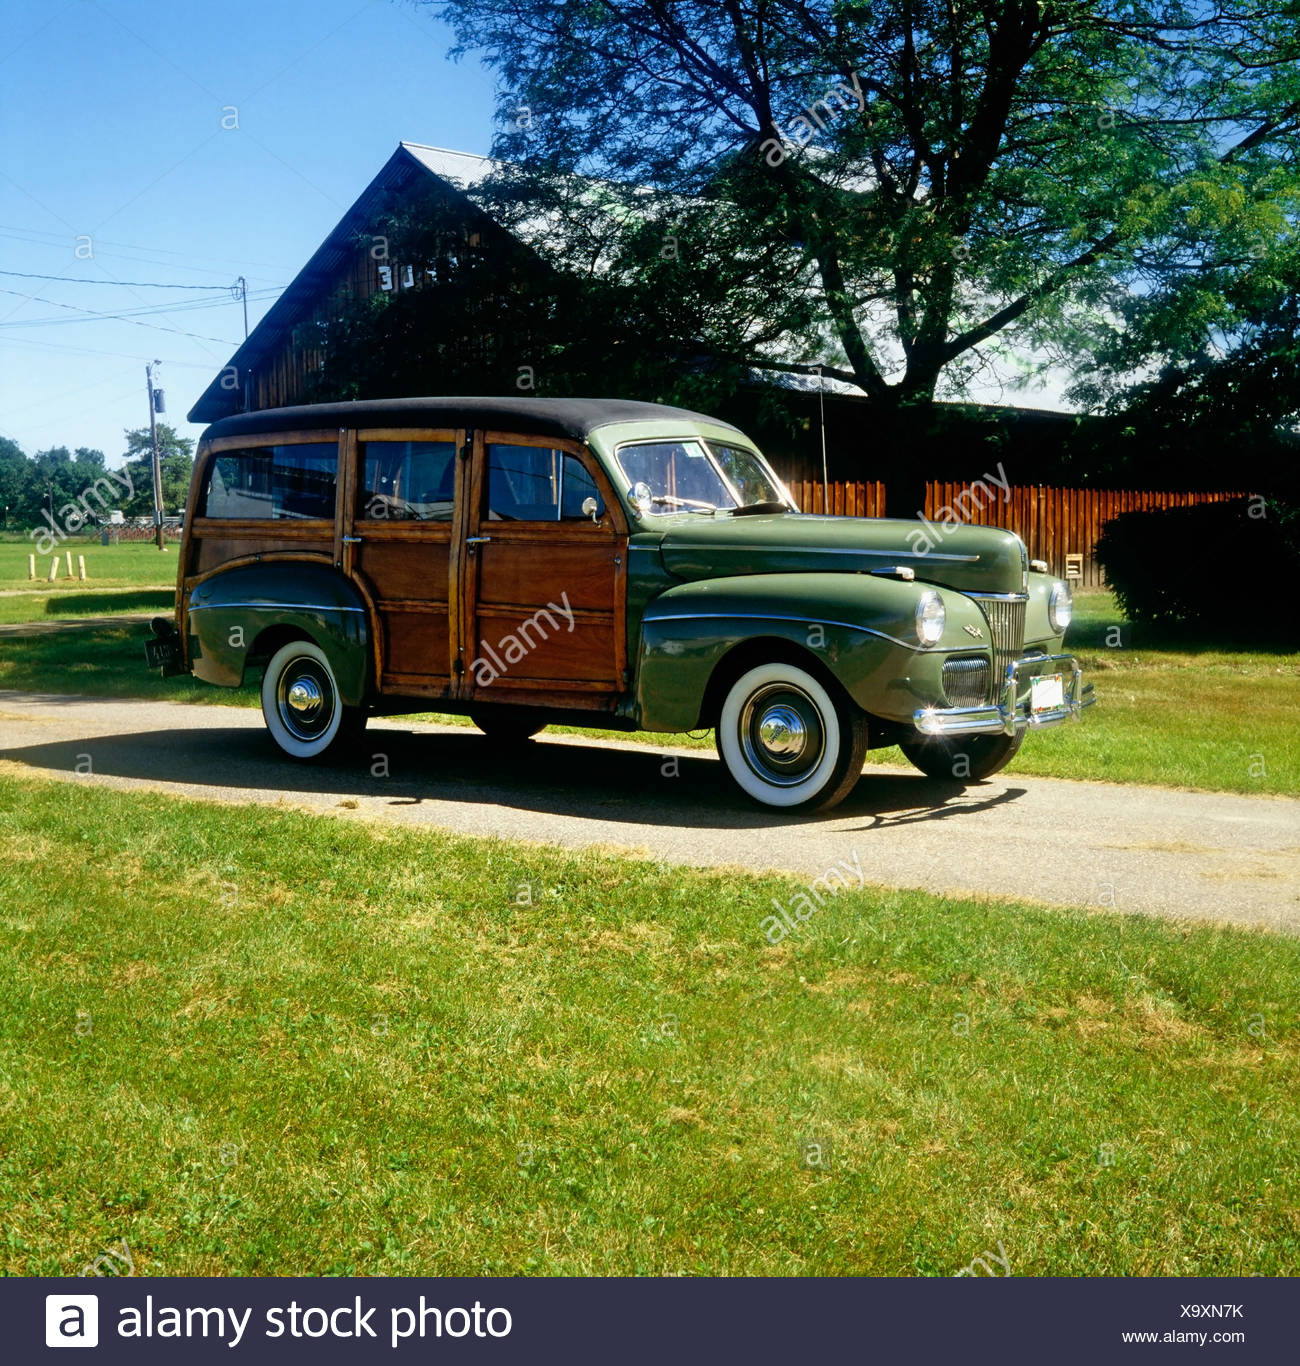 Woody Station Wagon Stock Photos Images 1941 Oldsmobile Ford Image